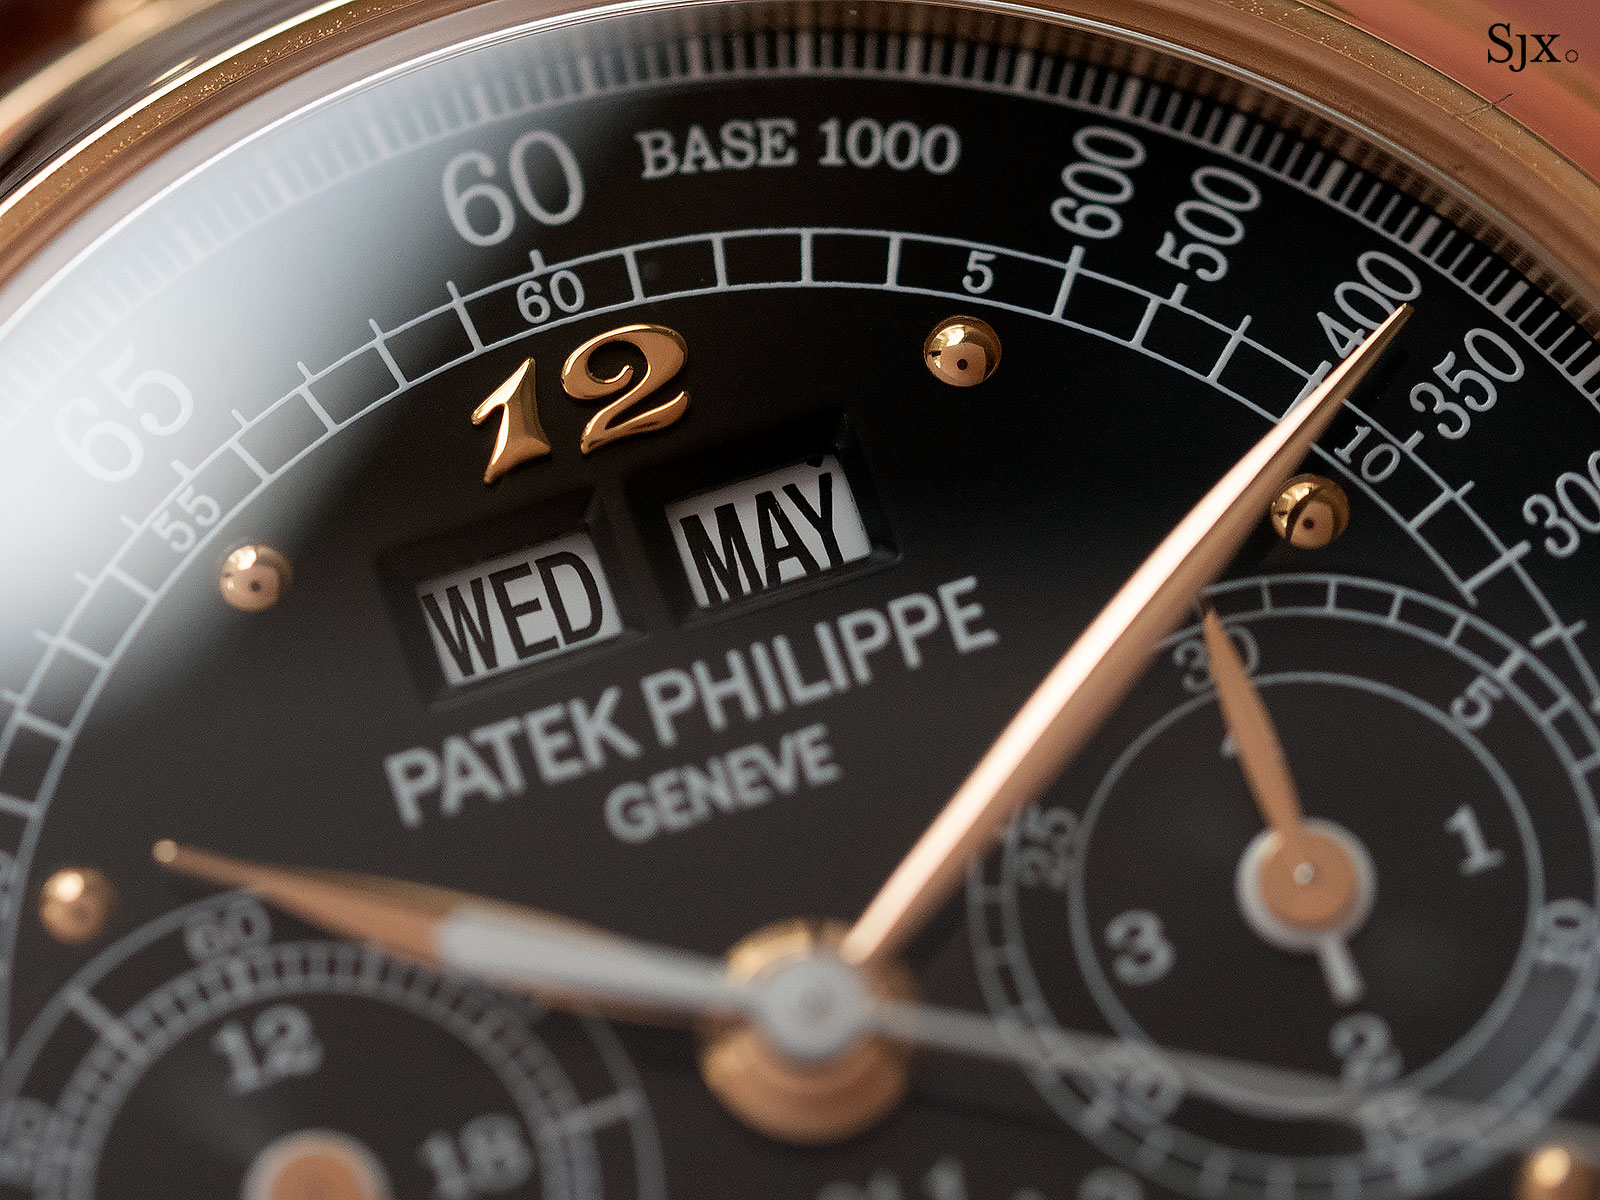 Patek Philippe 3970R London 2015 6